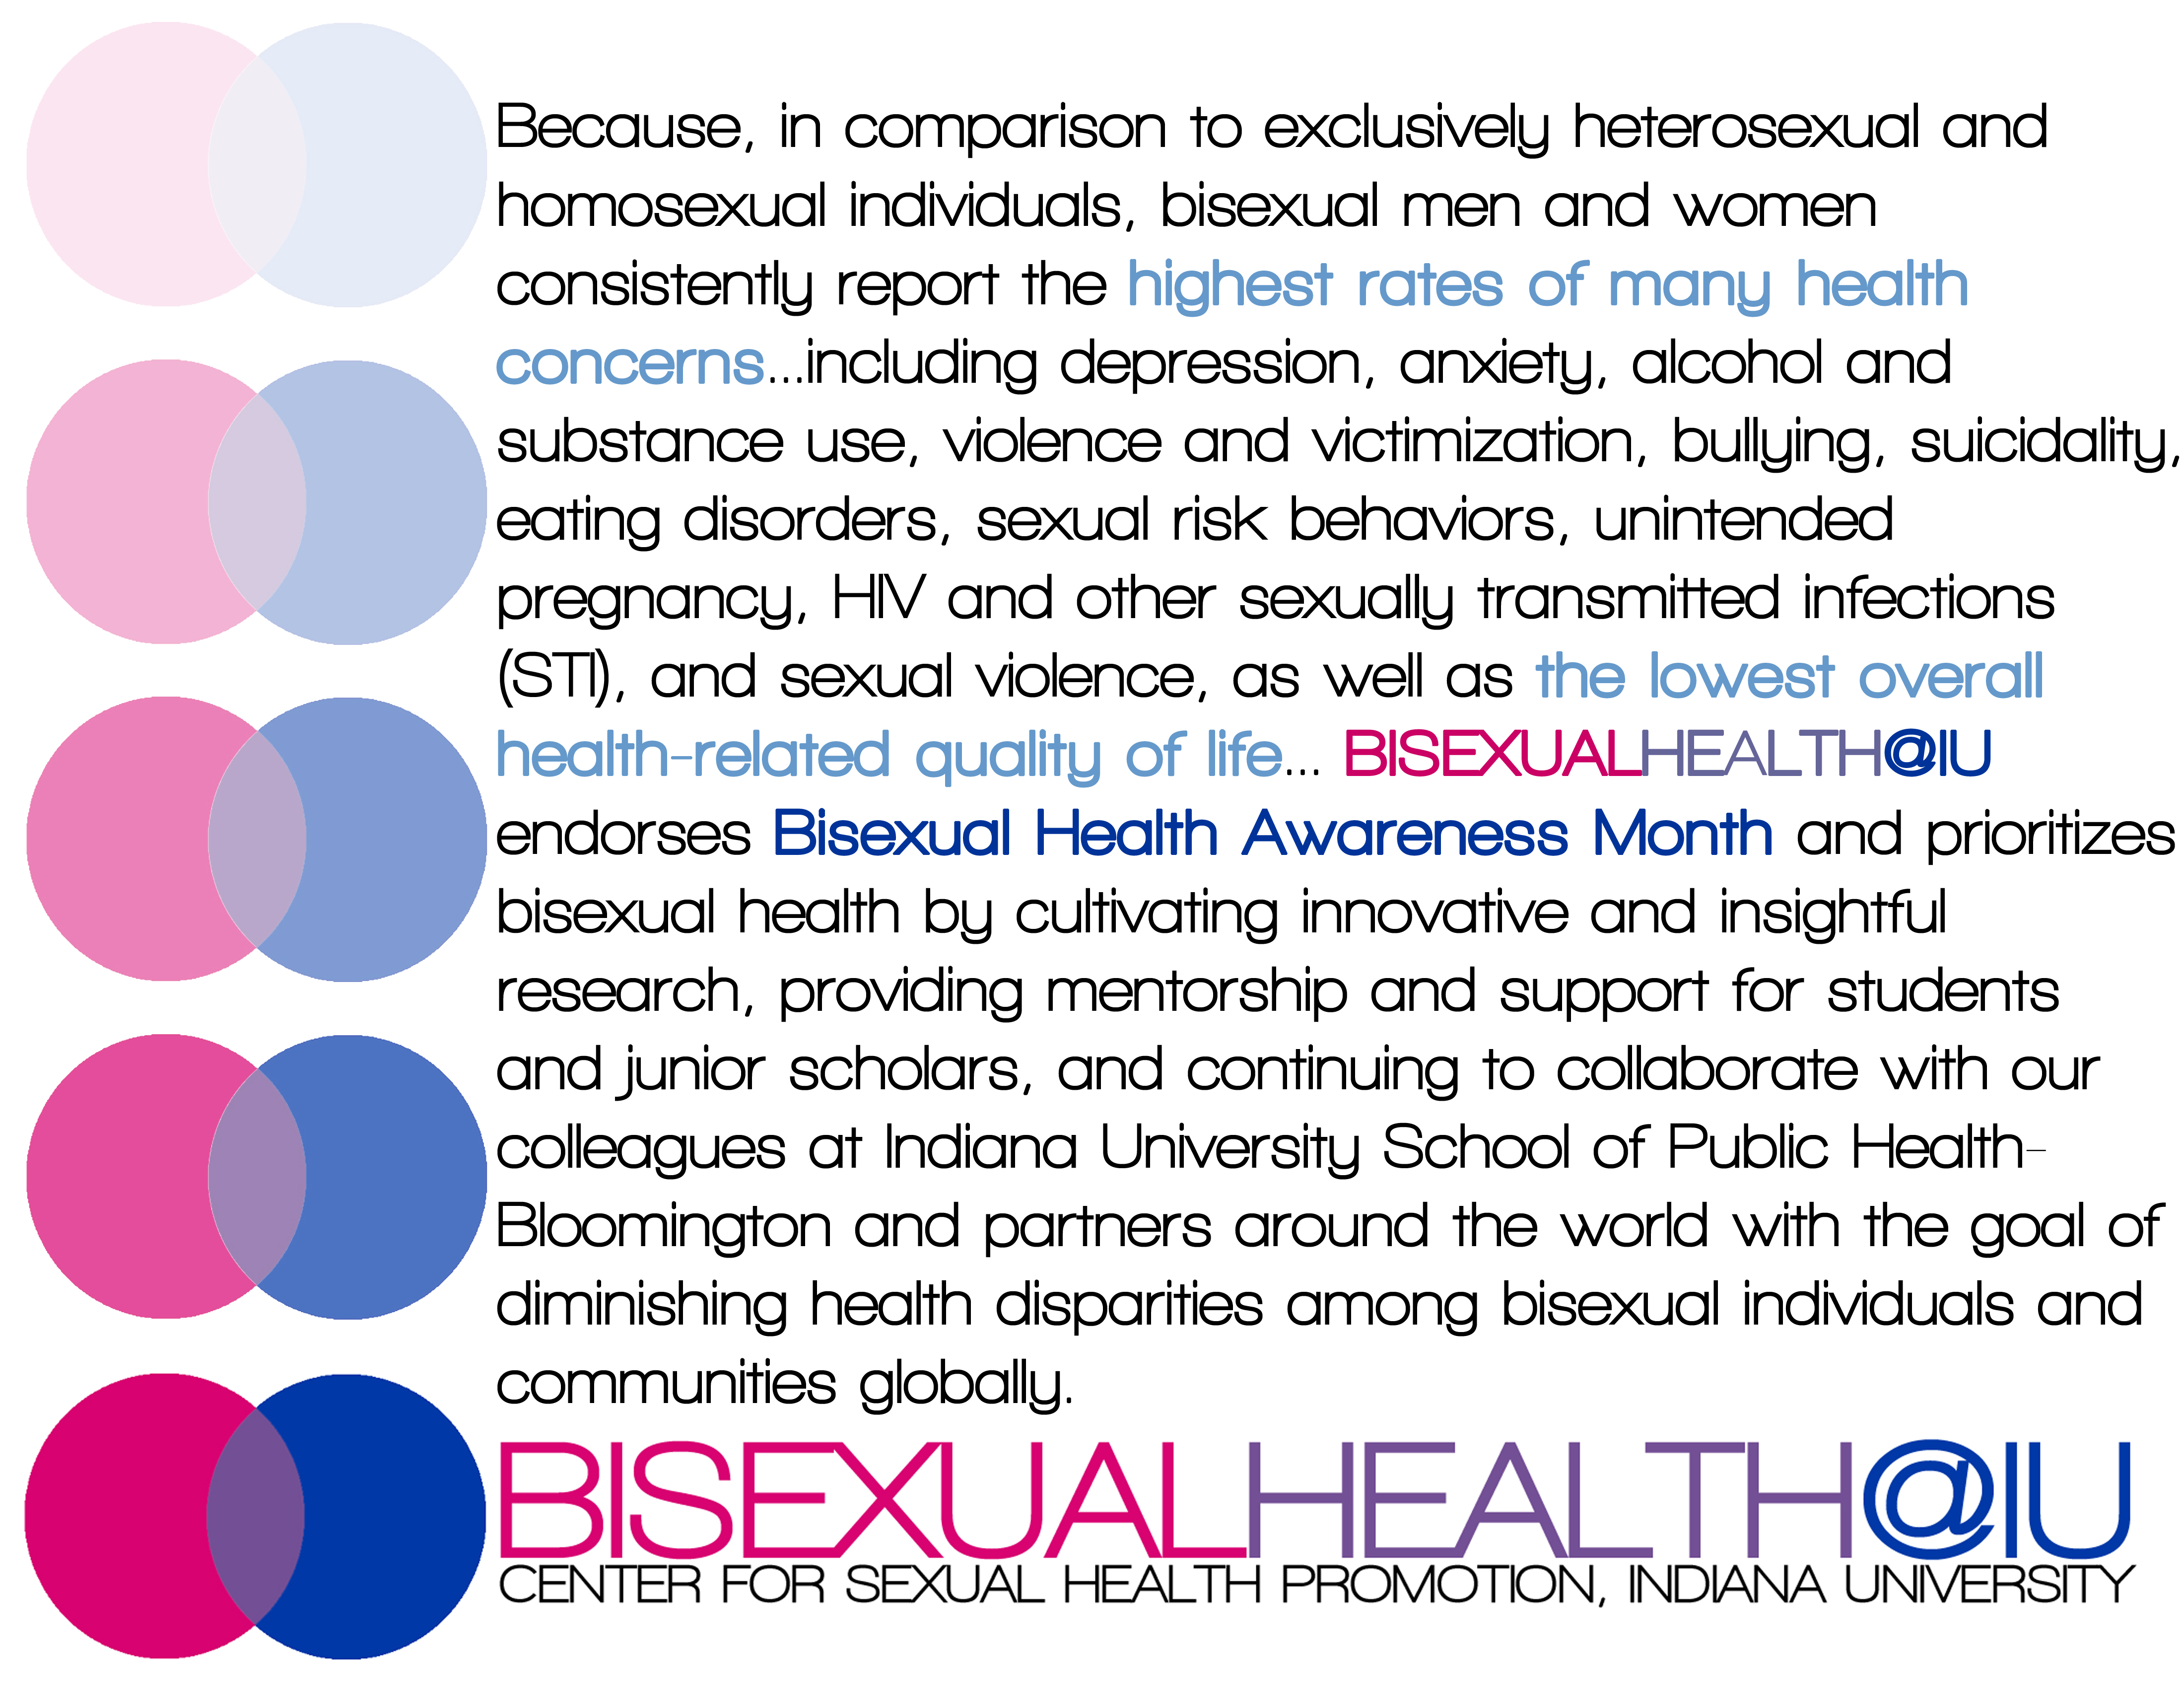 Bisexual Health IU Conference Information Image